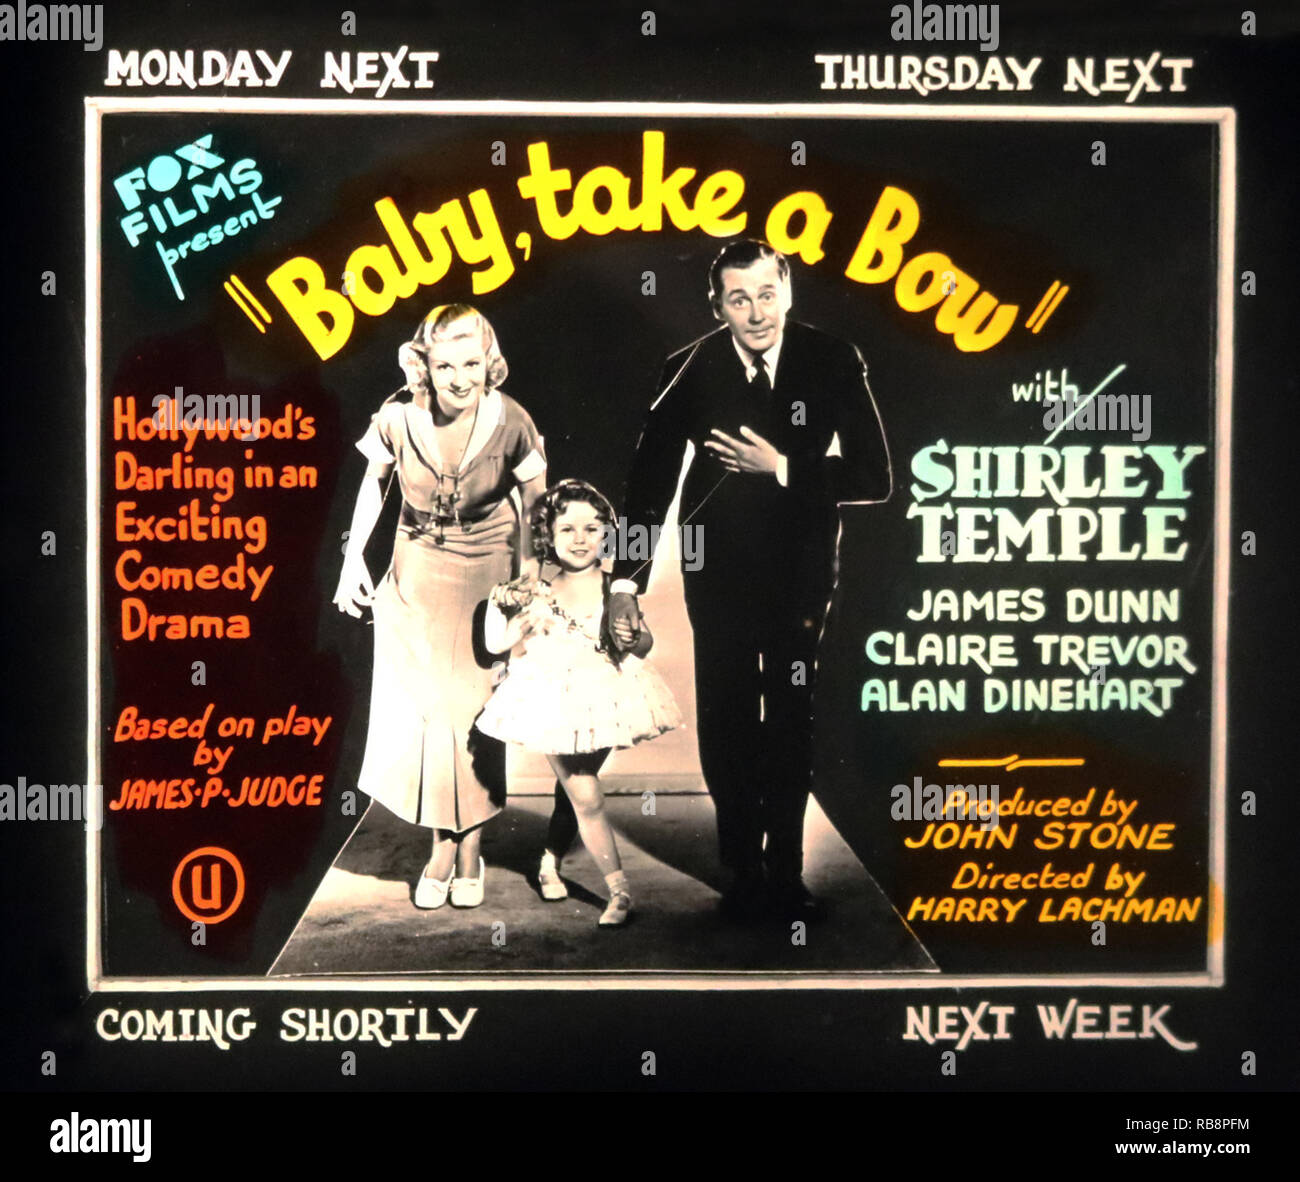 'Baby take a bow' film advertisement - Stock Image